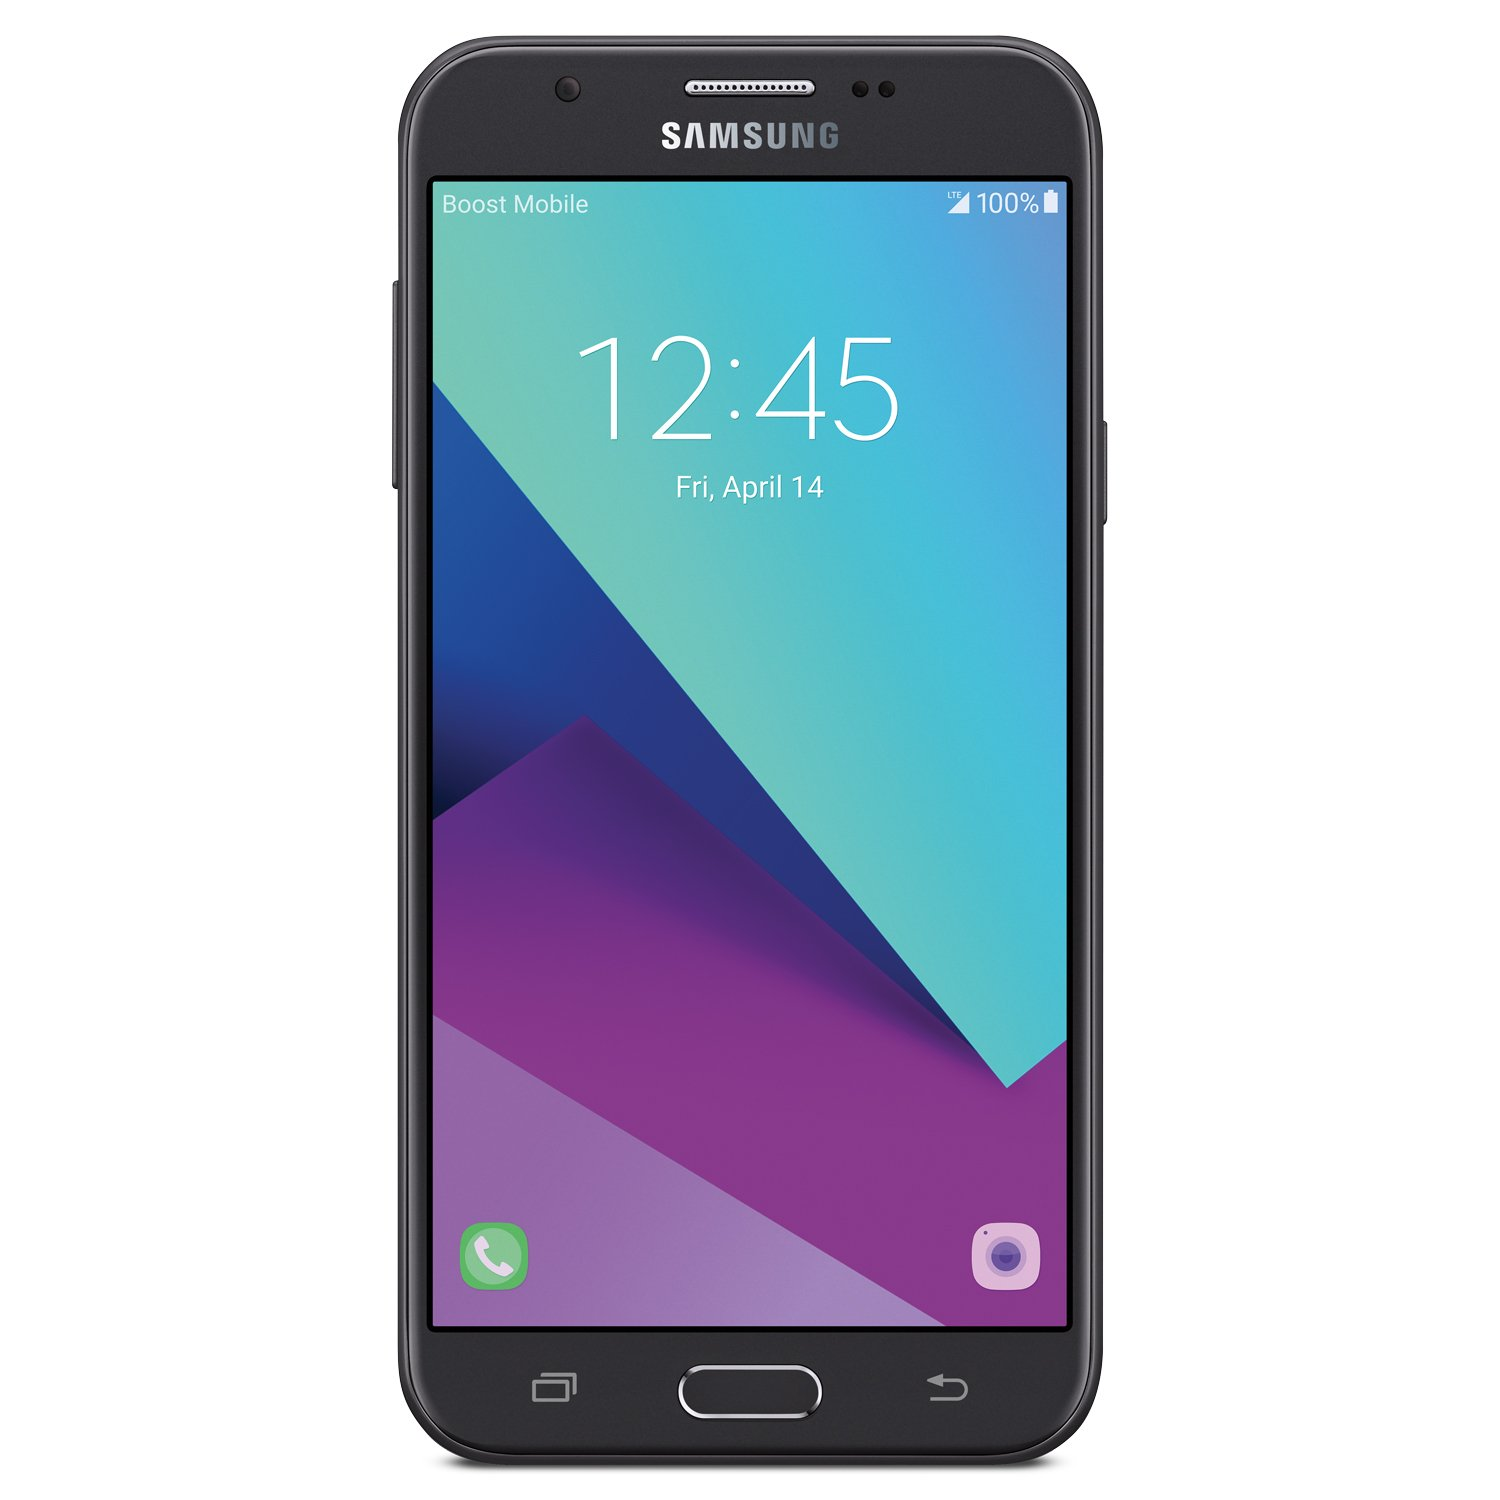 Samsung Galaxy J7 Perx - Boost Mobile Prepaid - Carrier Locked by Boost Mobile